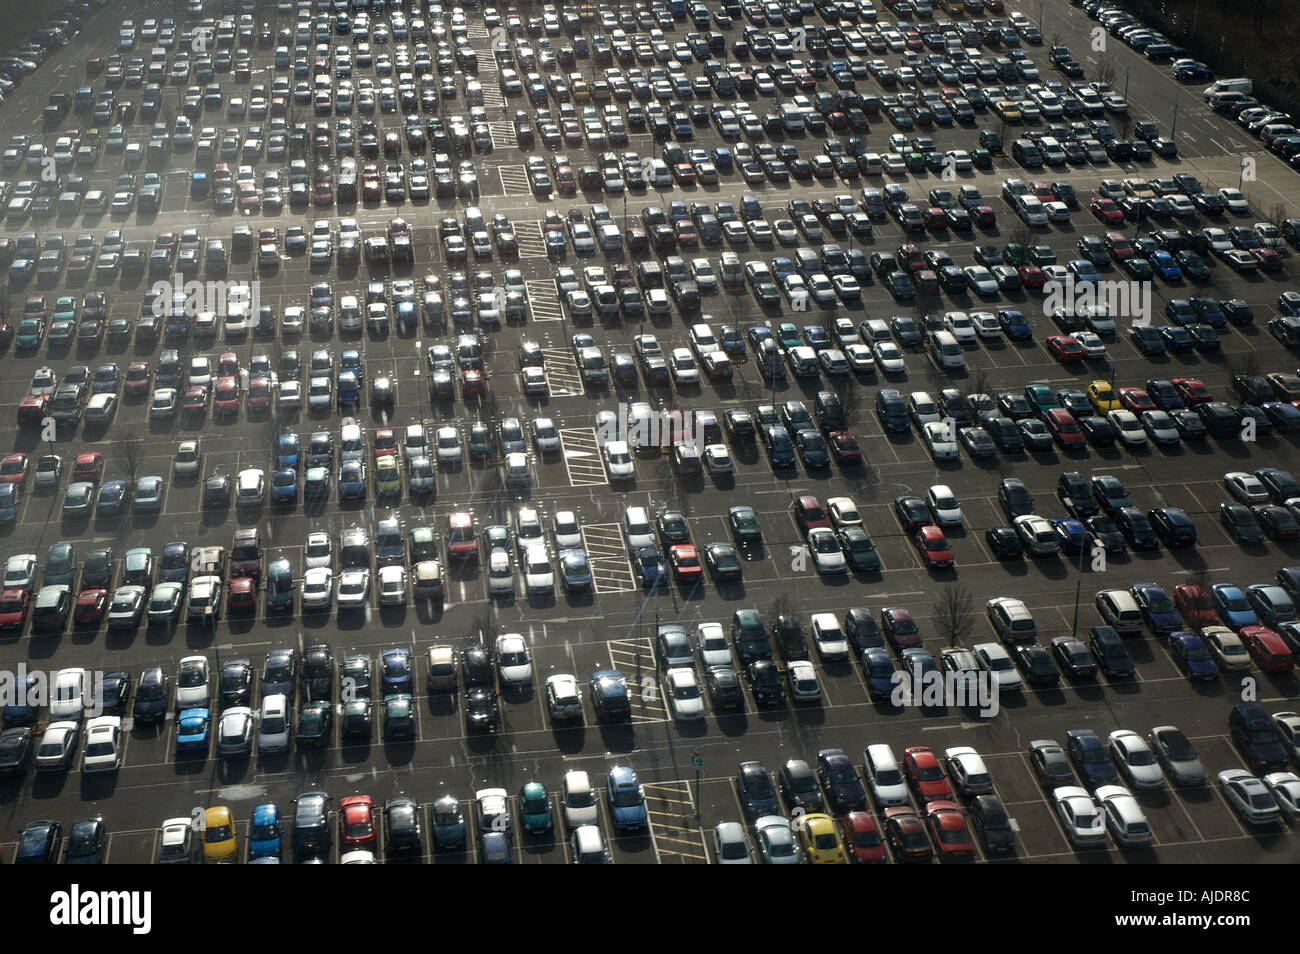 Cars parked at Gatwick airport Carpark - Stock Image